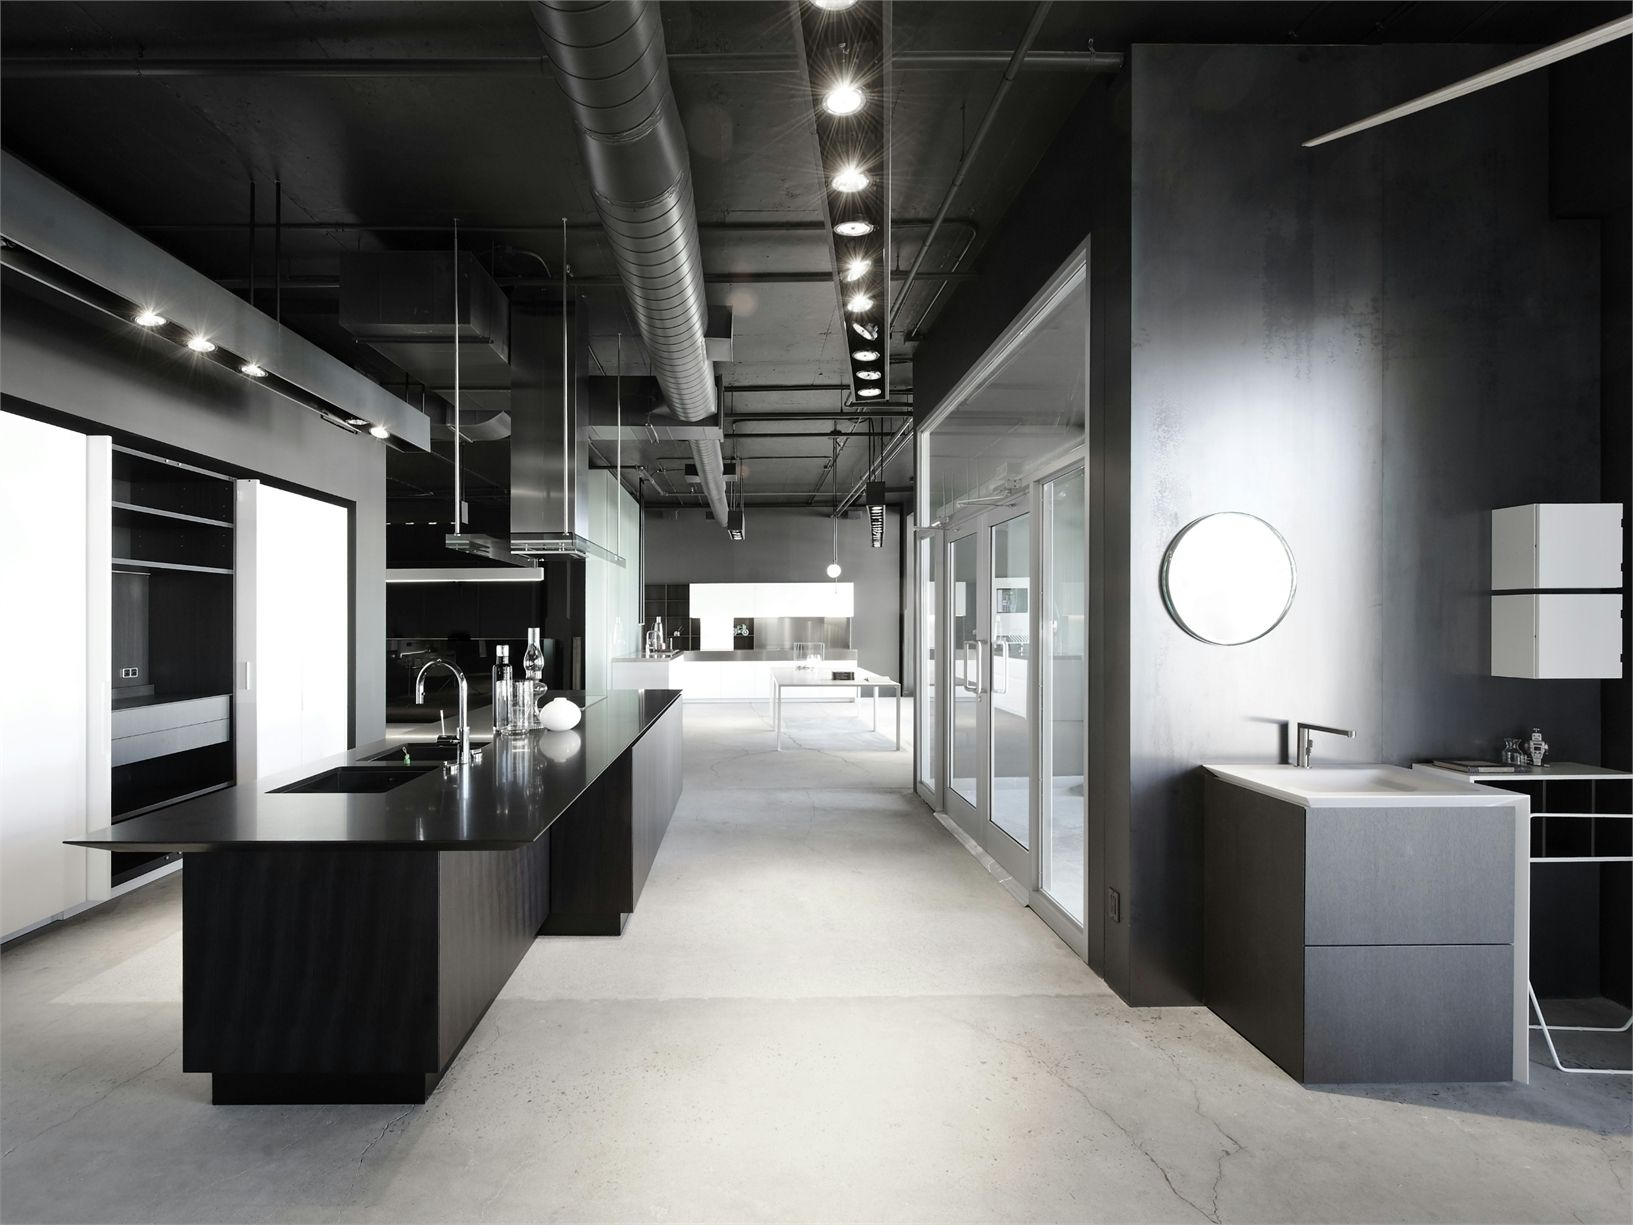 The new exhibition space boffi in montreal - Cuisine ultra design ...